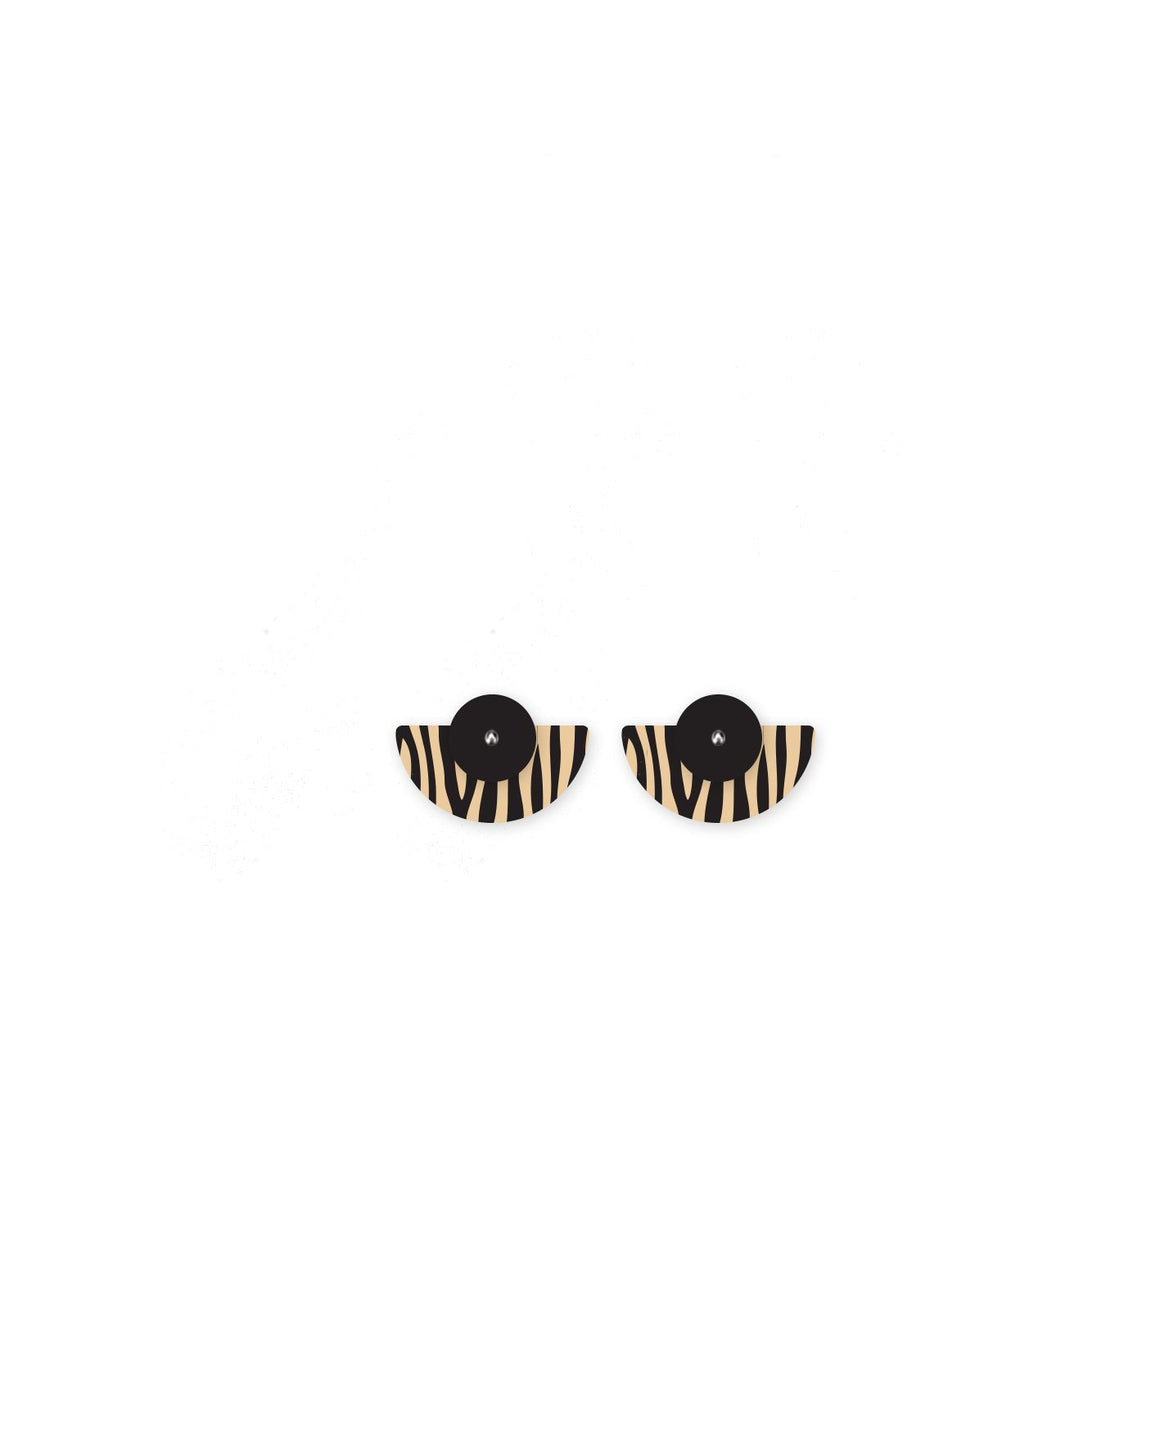 Creme Animal Print Layered Small Moon Stud Earrings